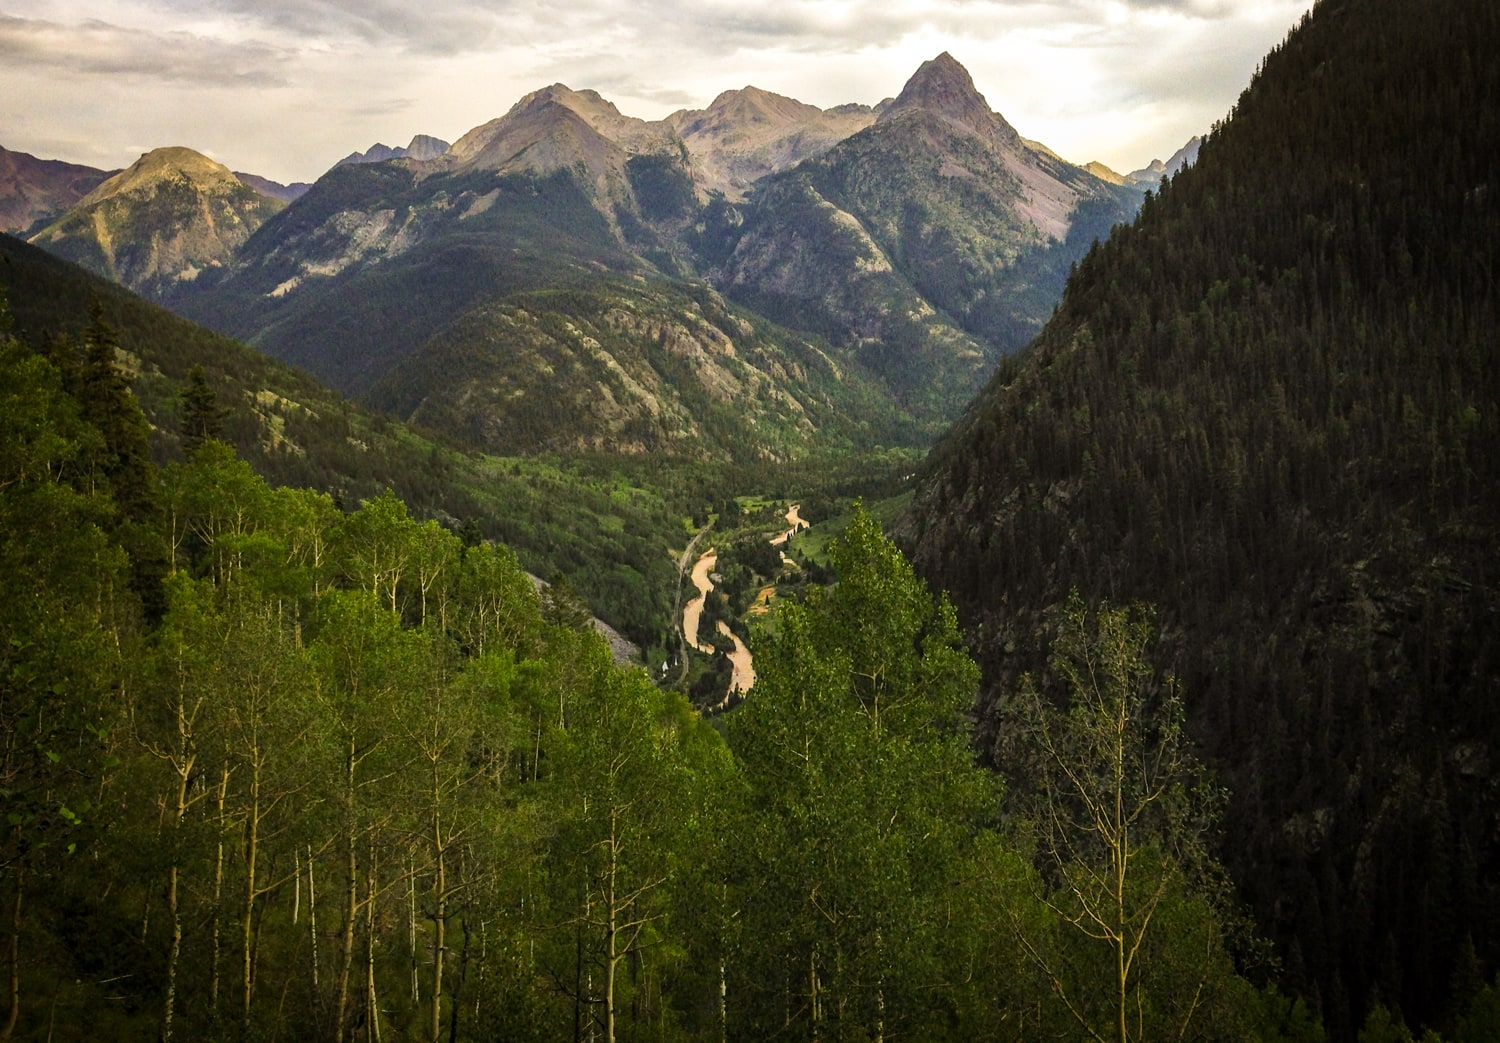 Hiking to the Animas River from the Colorado Trail